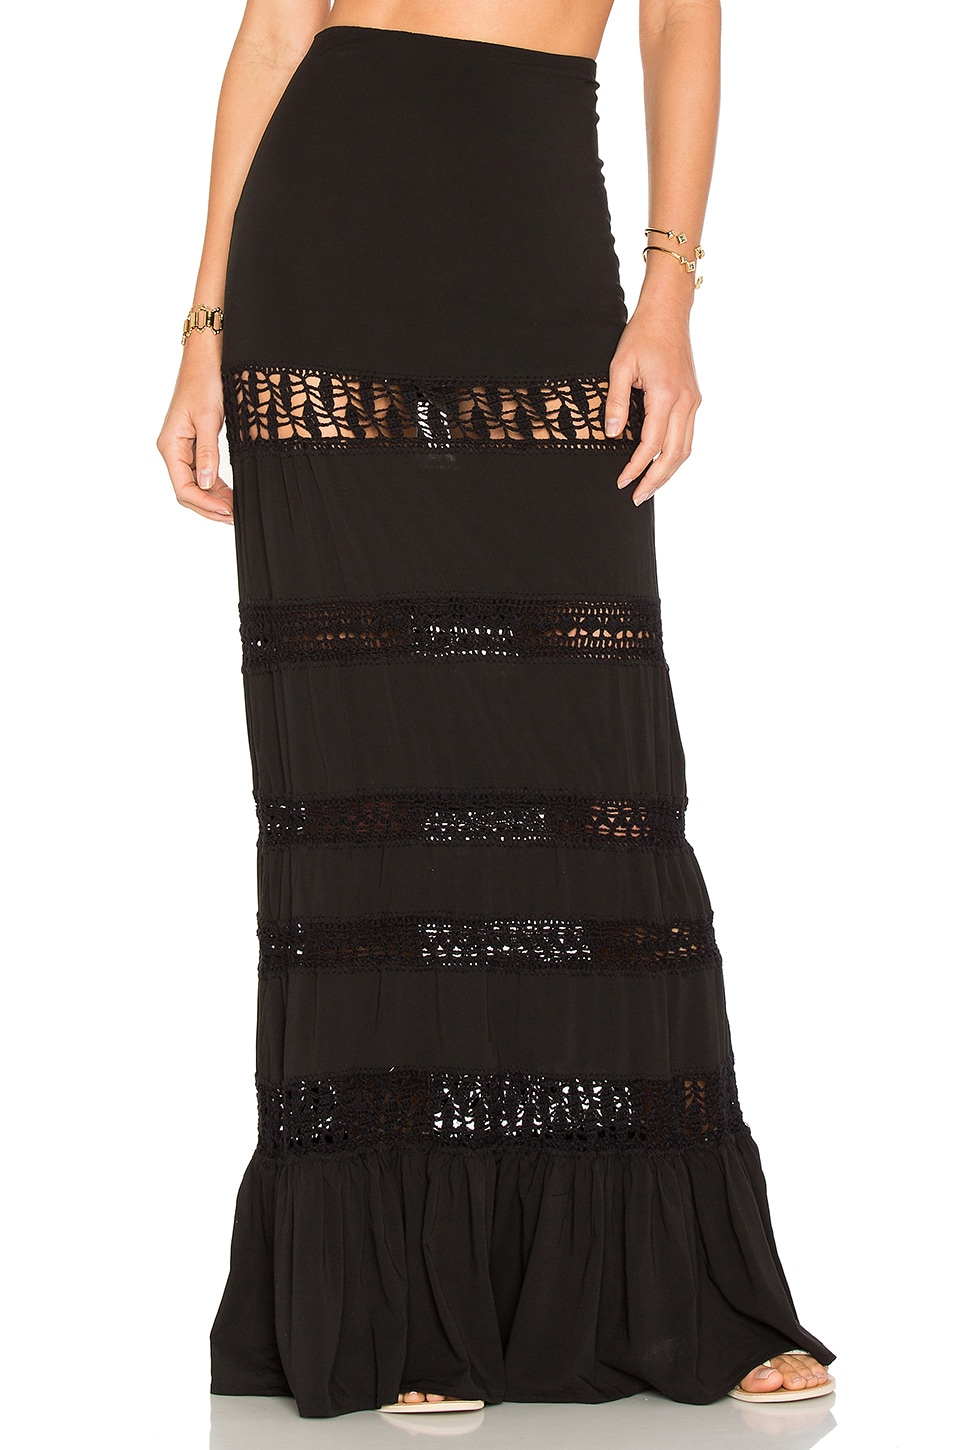 Indah Nina Skirt in Black